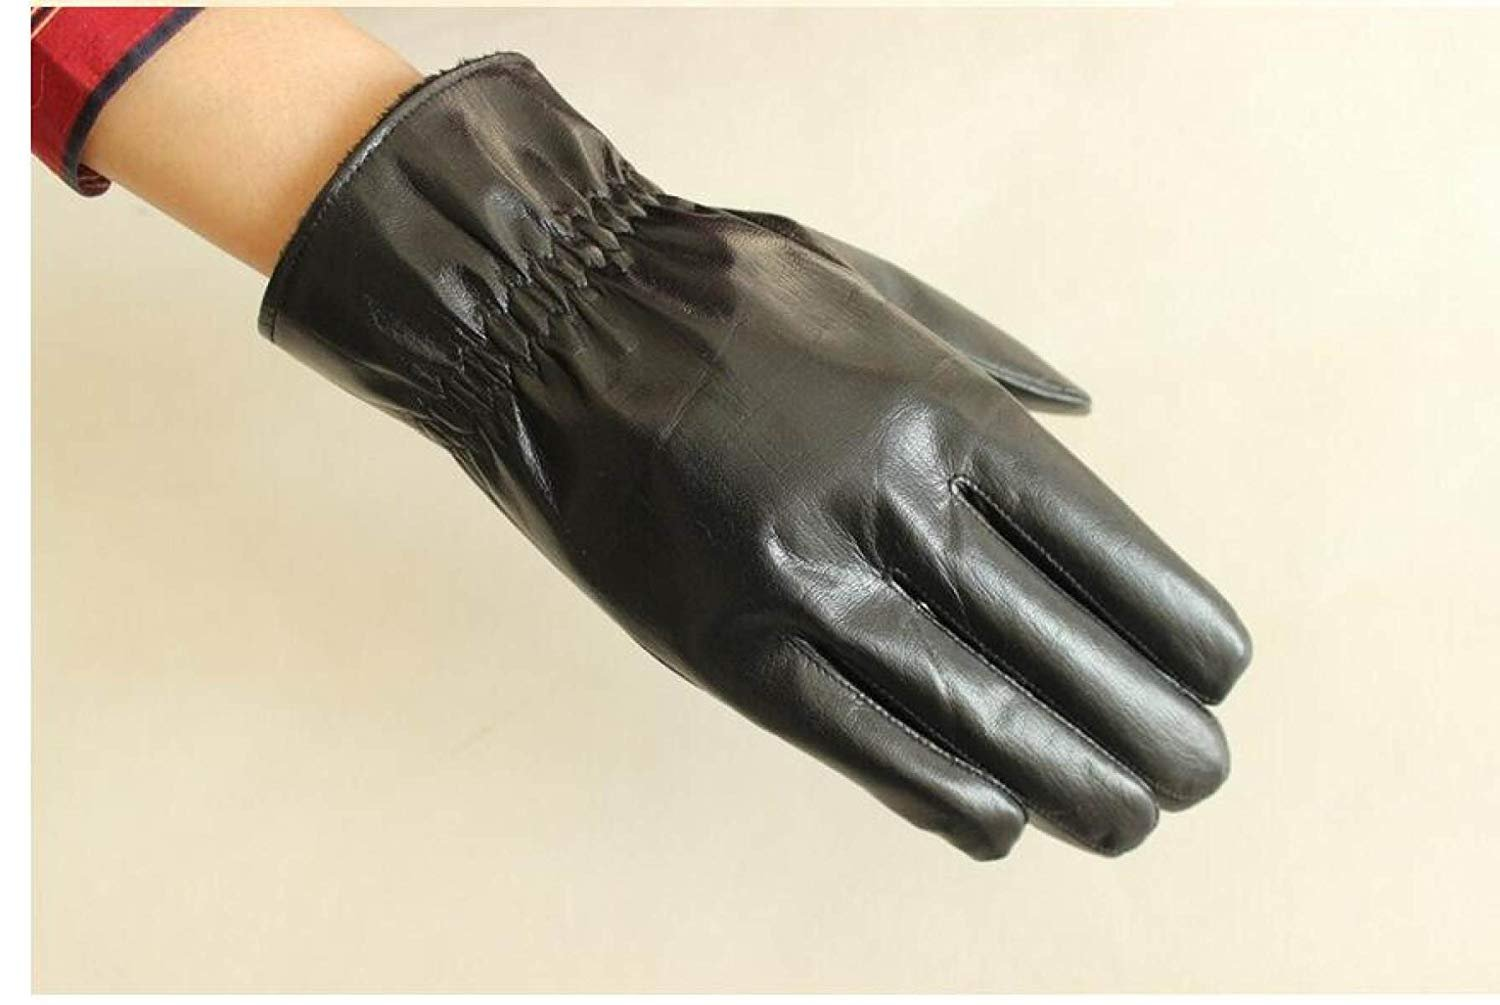 CWJ Men's Gloves Thick Drive Car Ride Warm,Black,One Size by CWJ (Image #5)